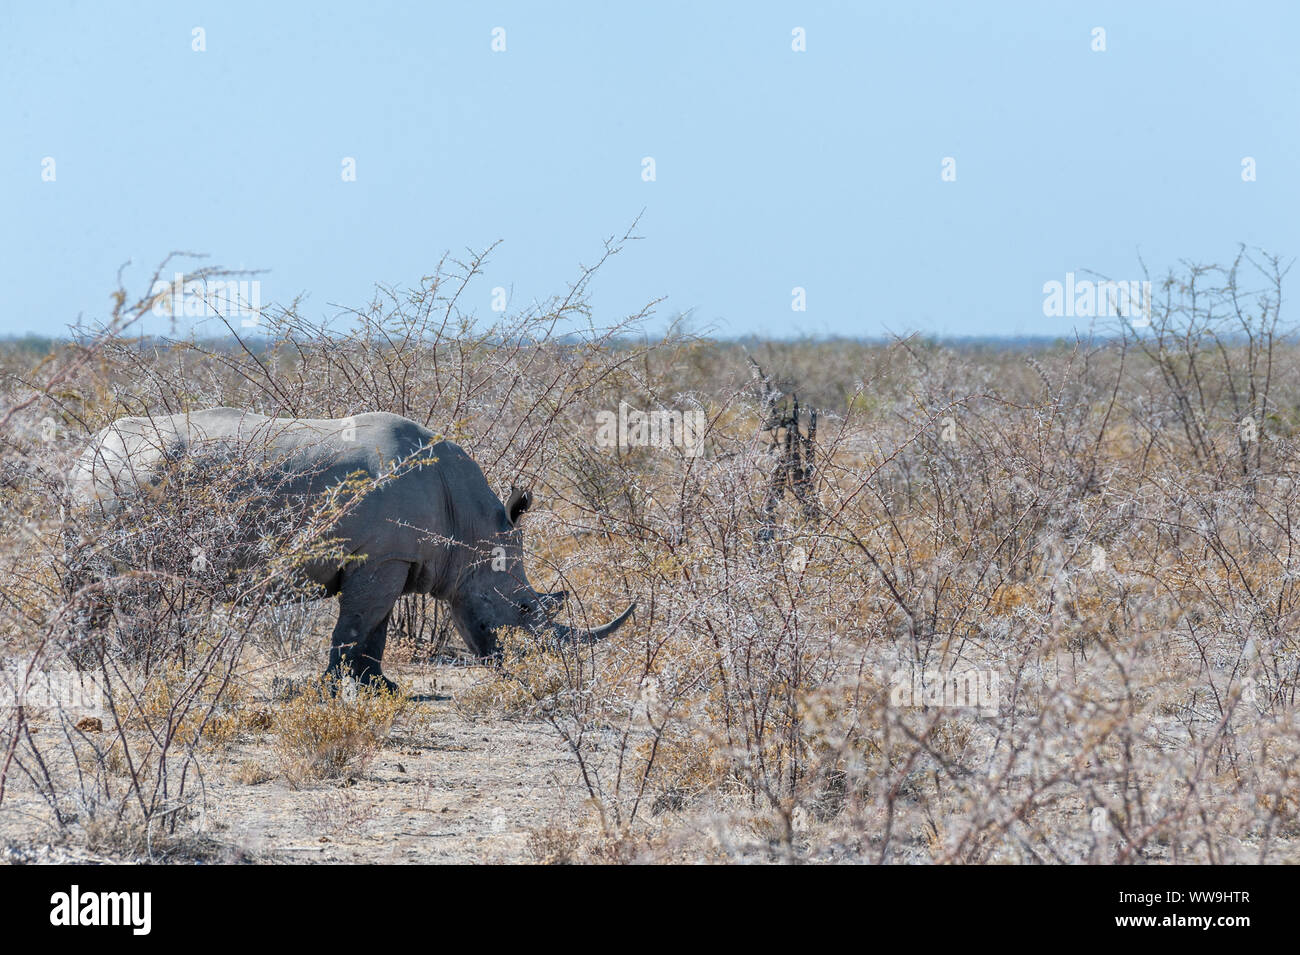 One out of a group of four white Rhinoceros -Ceratotherium simum- standing on a barren plain in Etosha National Park, Namibia. - Stock Photo